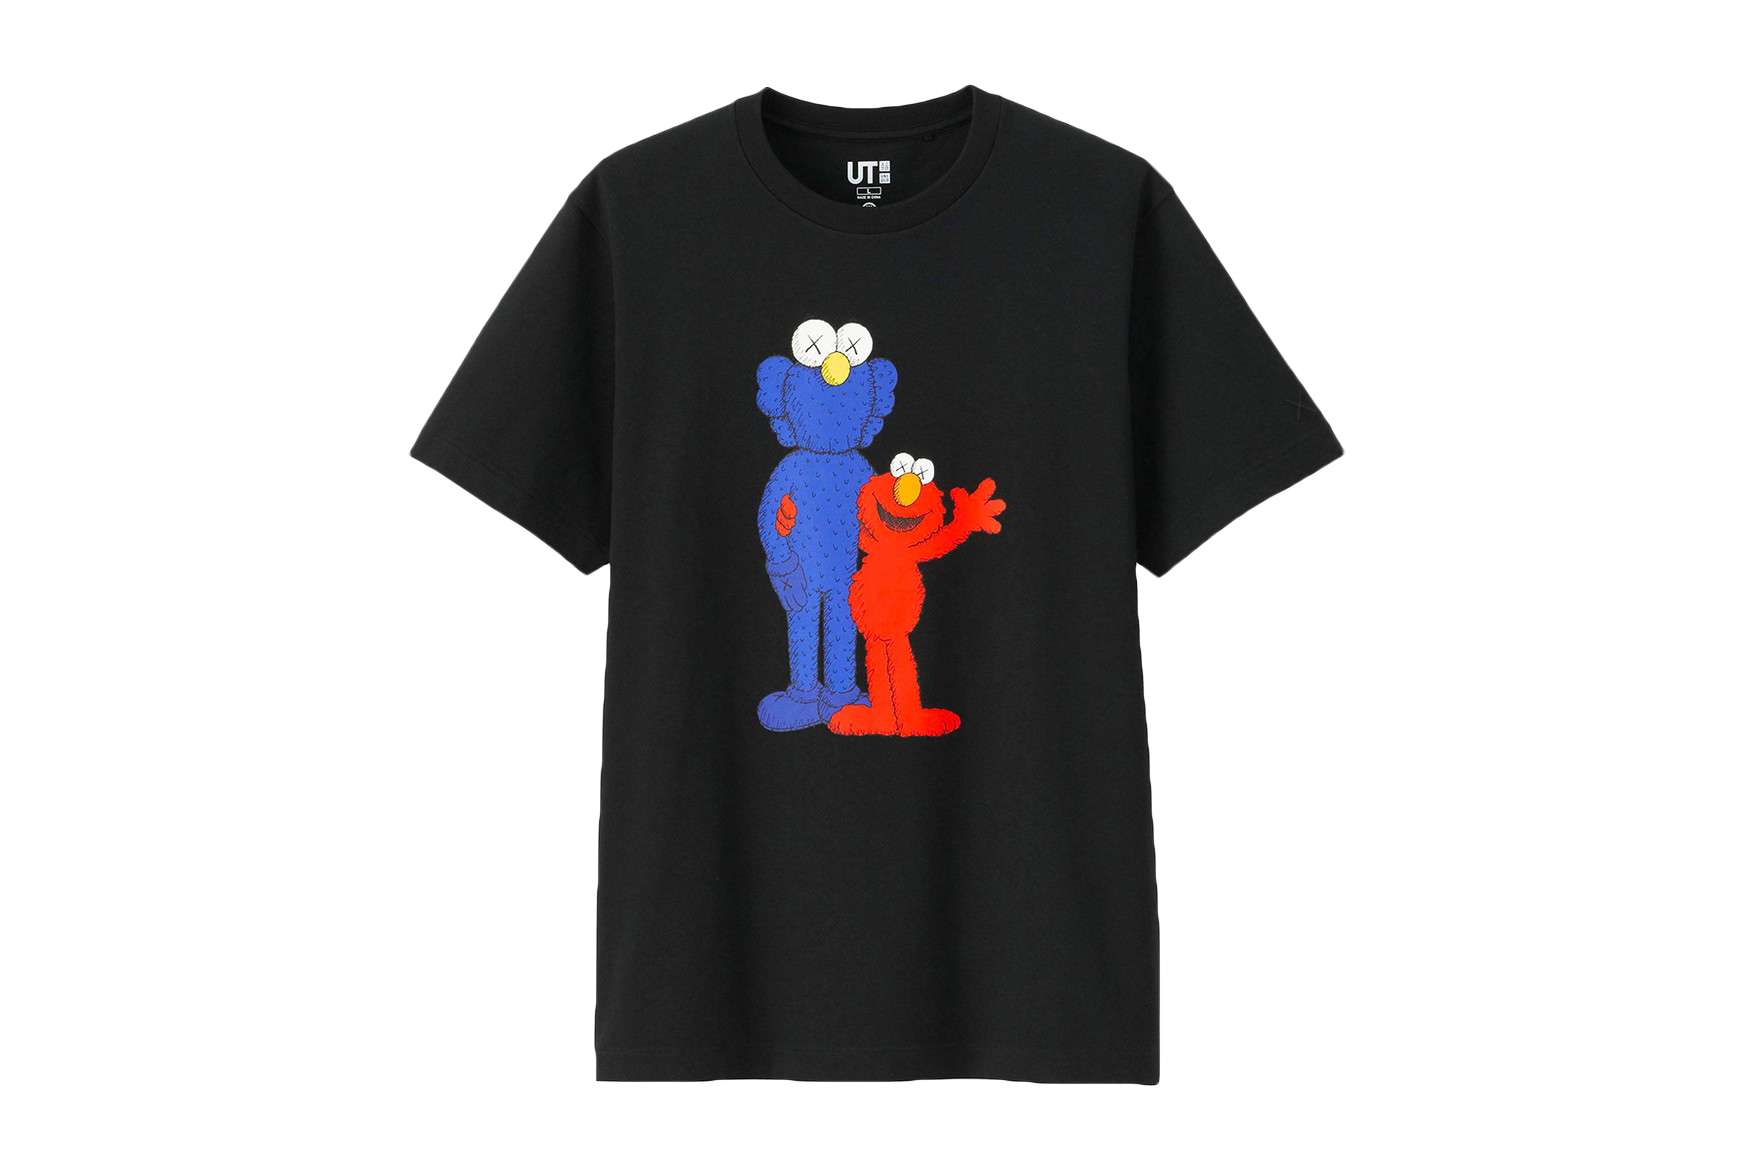 KAWS x Uniqlo UT 'Sesame Street' T-Shirt Collection